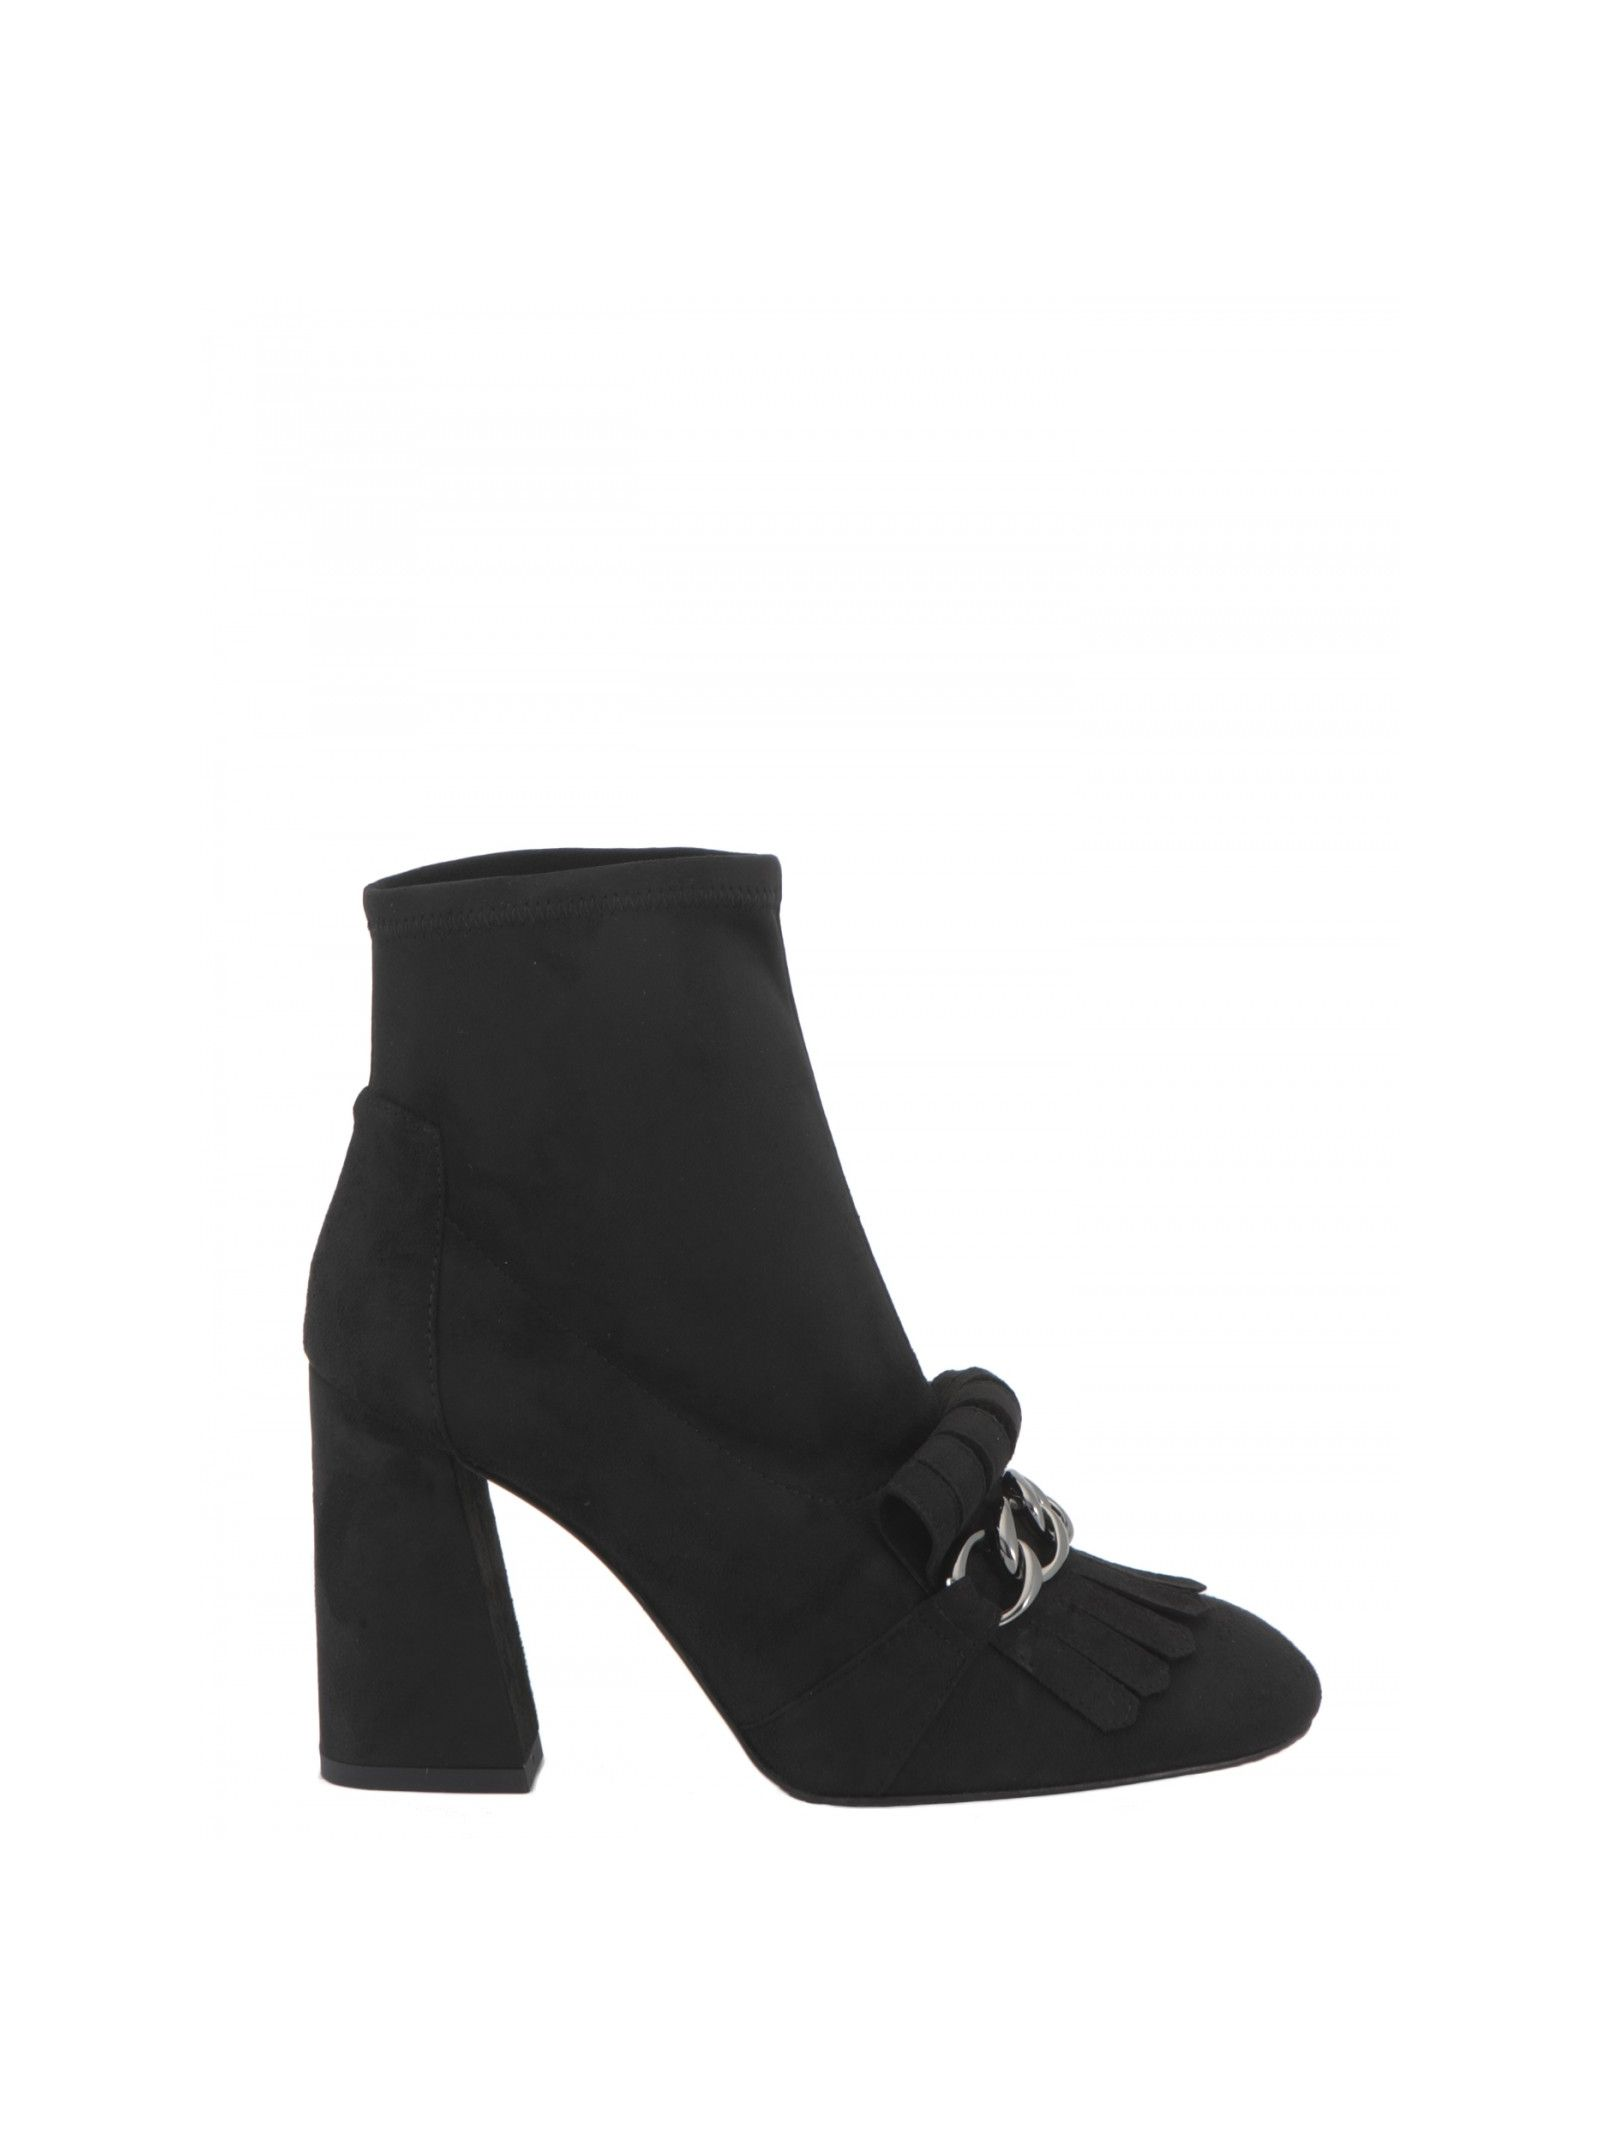 Suede ankle boots Hill: 10 cm Details: Suede ankle boots, Block heel, Round toe, Tassels with metal detailing at toe cap, Fabric lining